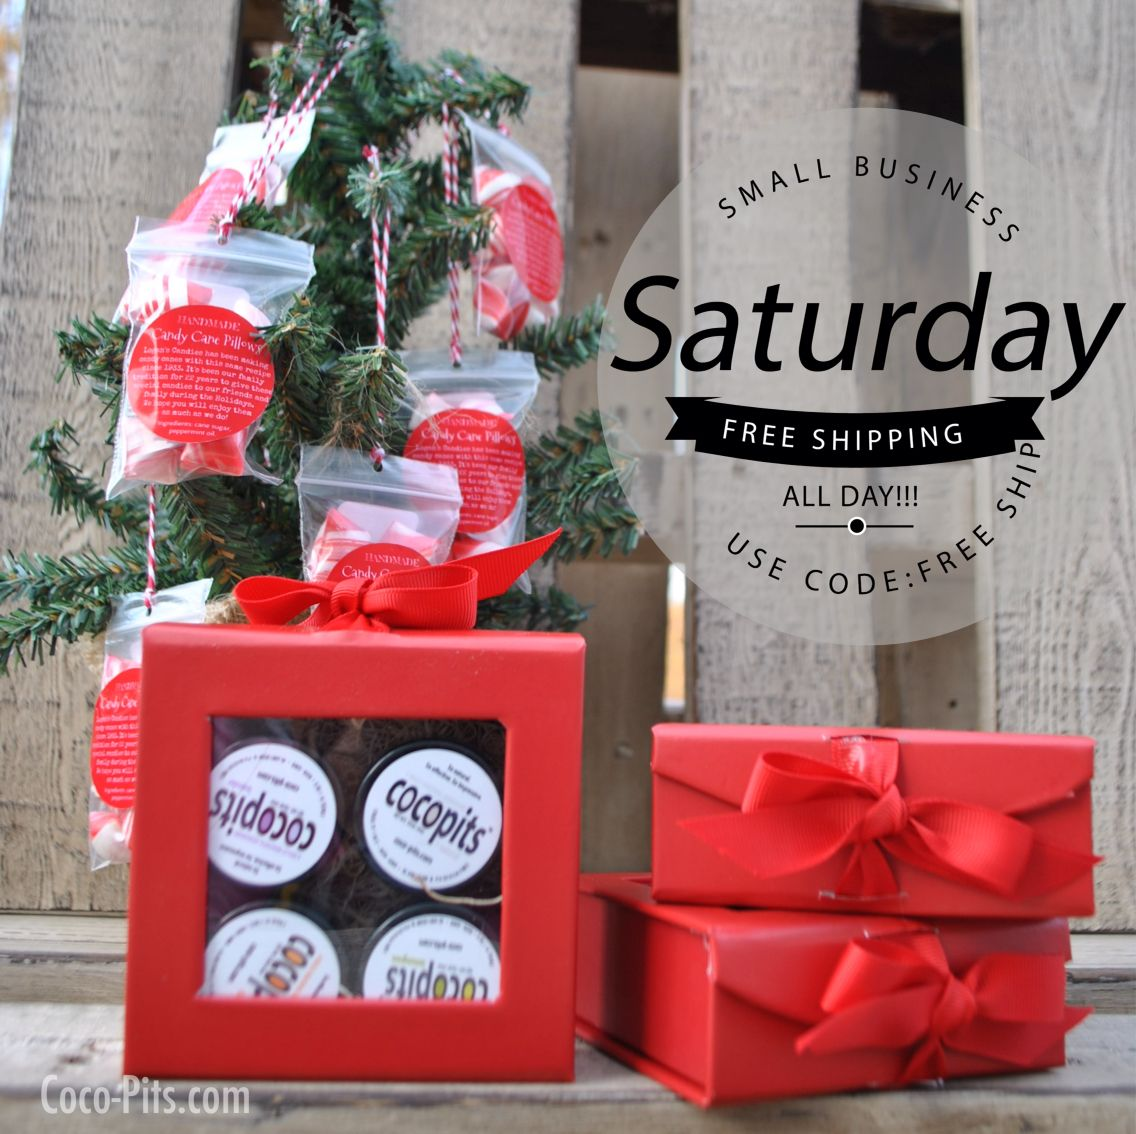 FREE Shipping For Small Business Saturday! Use Code